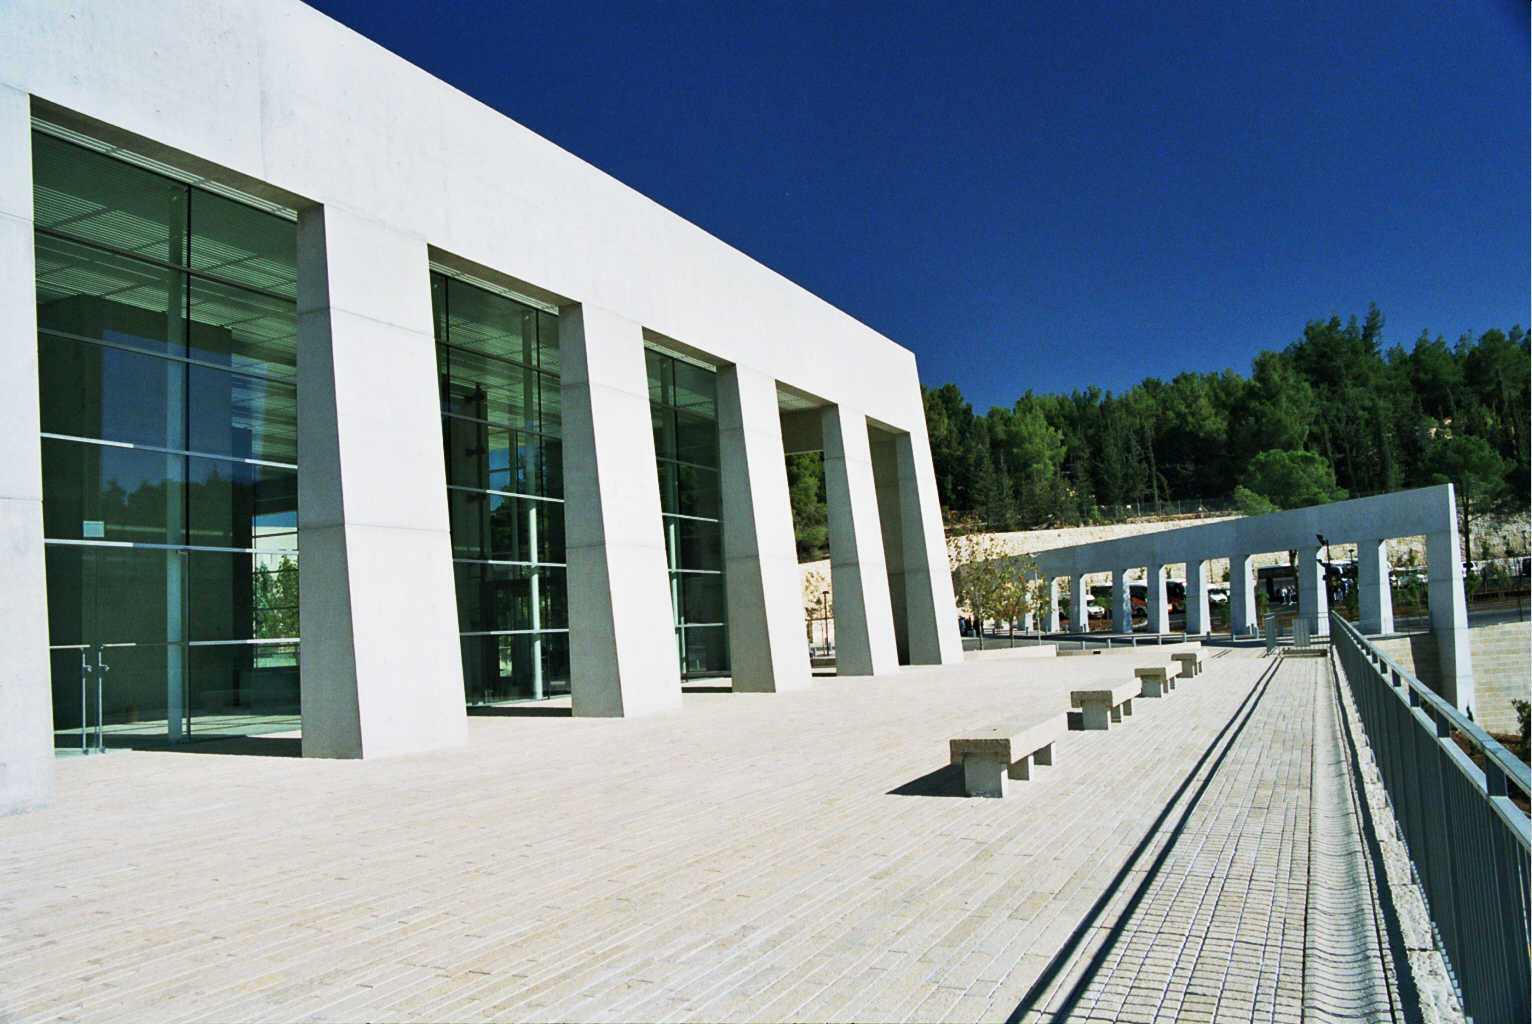 Yad Vashem Visitors' Center